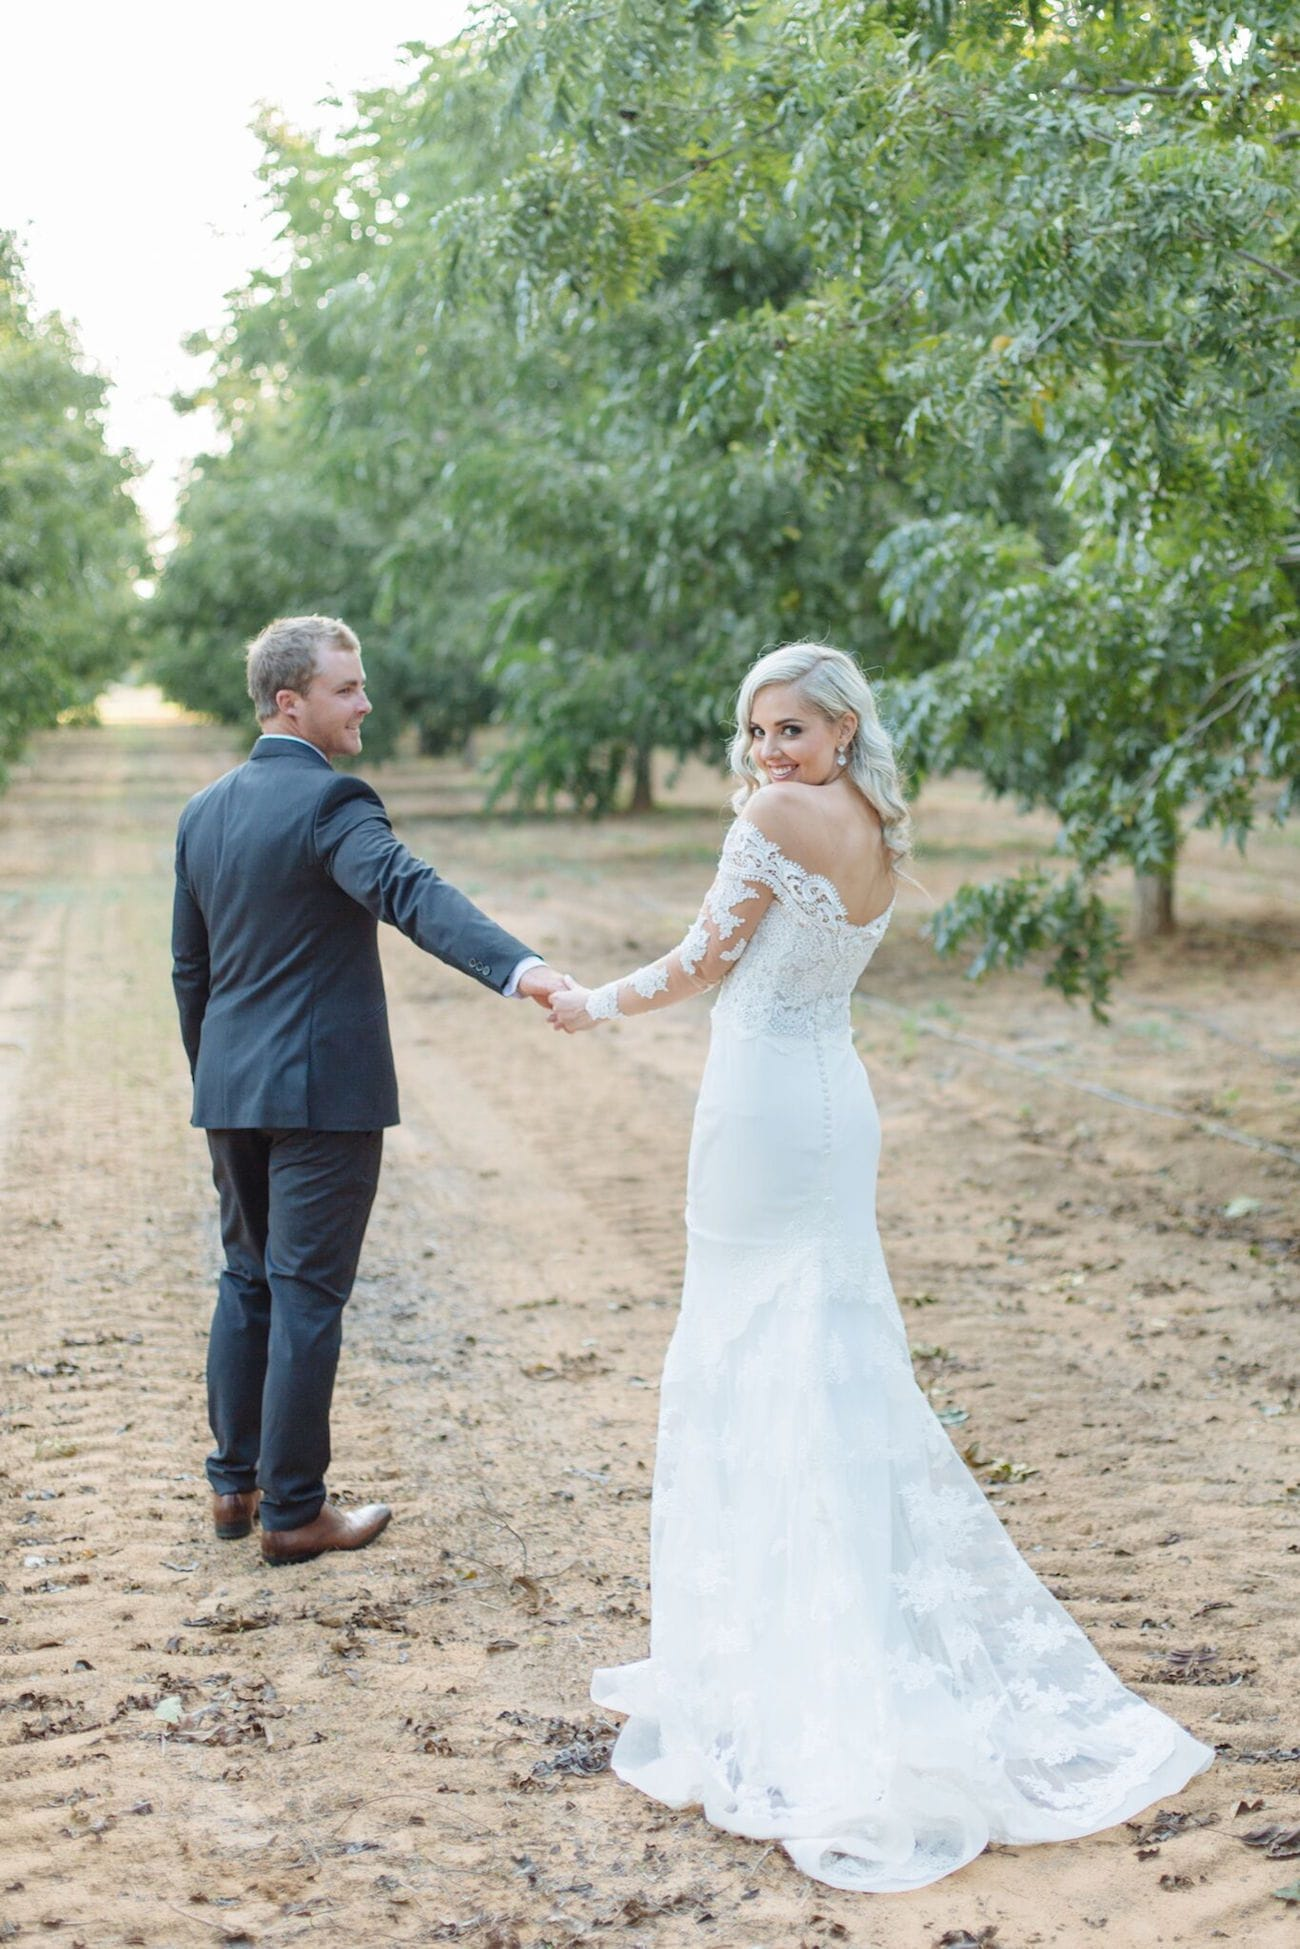 Classic country wedding dresses